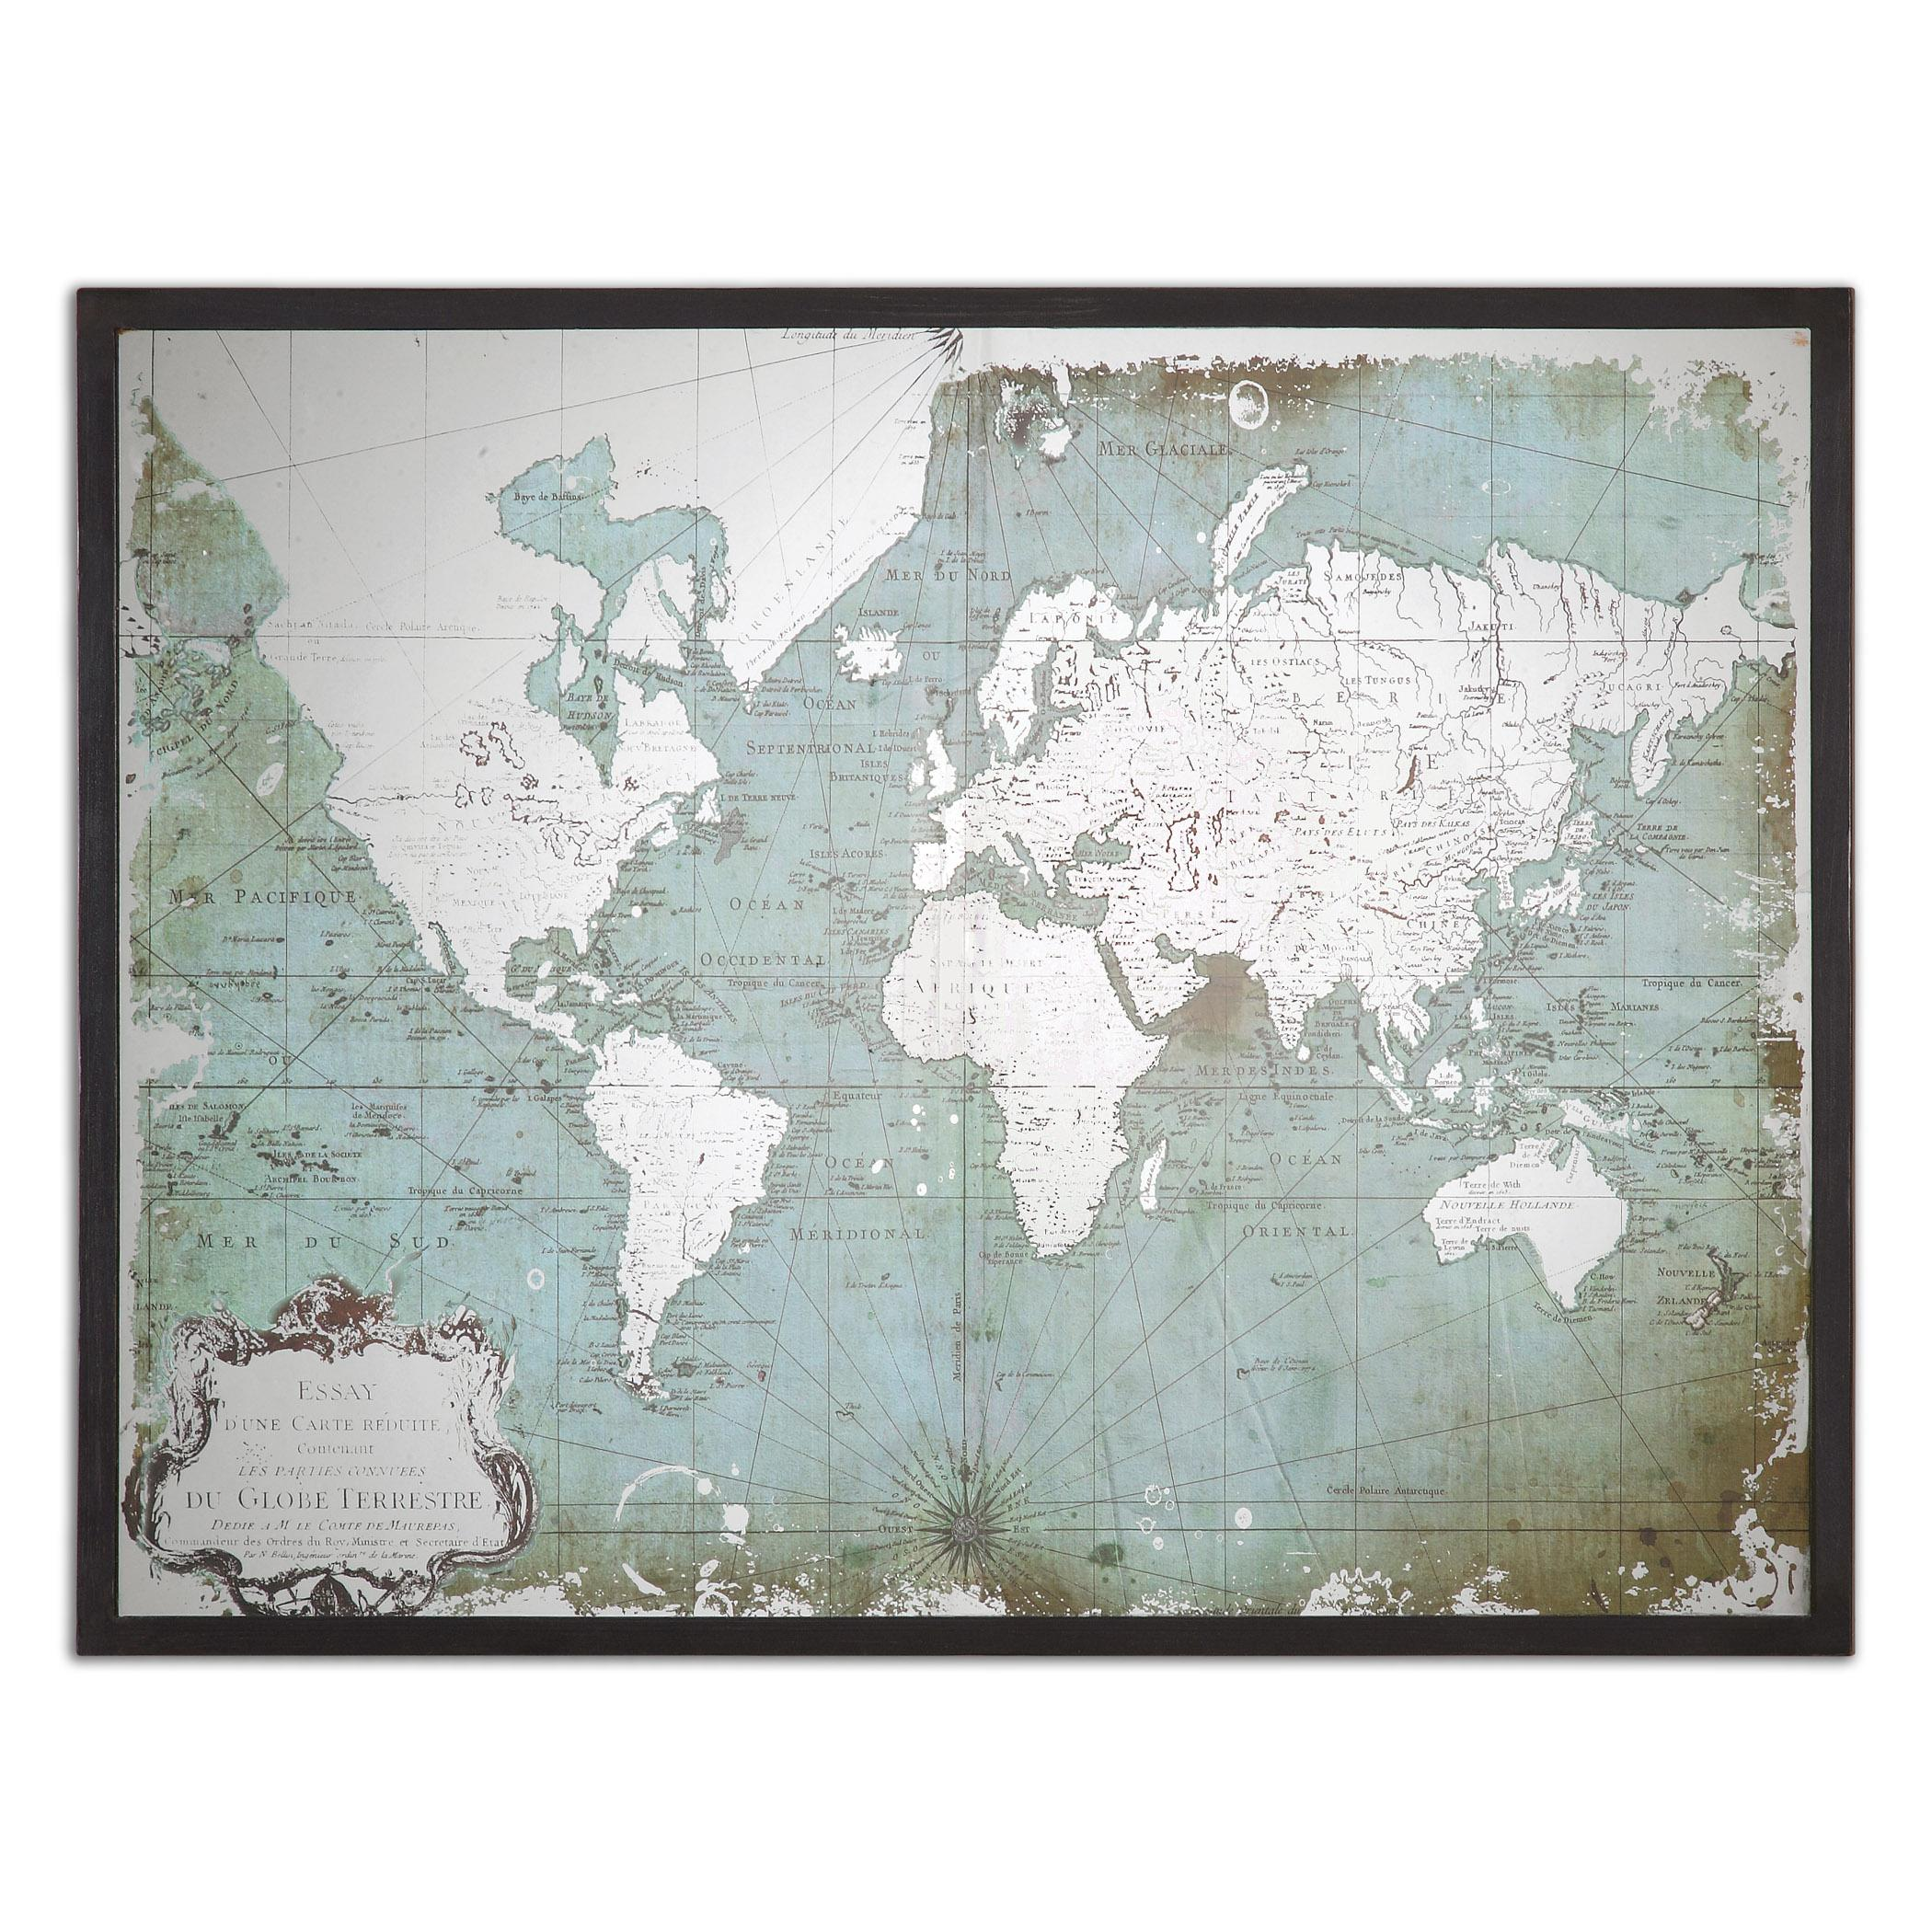 Uttermost Art Mirrored World Map - Item Number: 30400